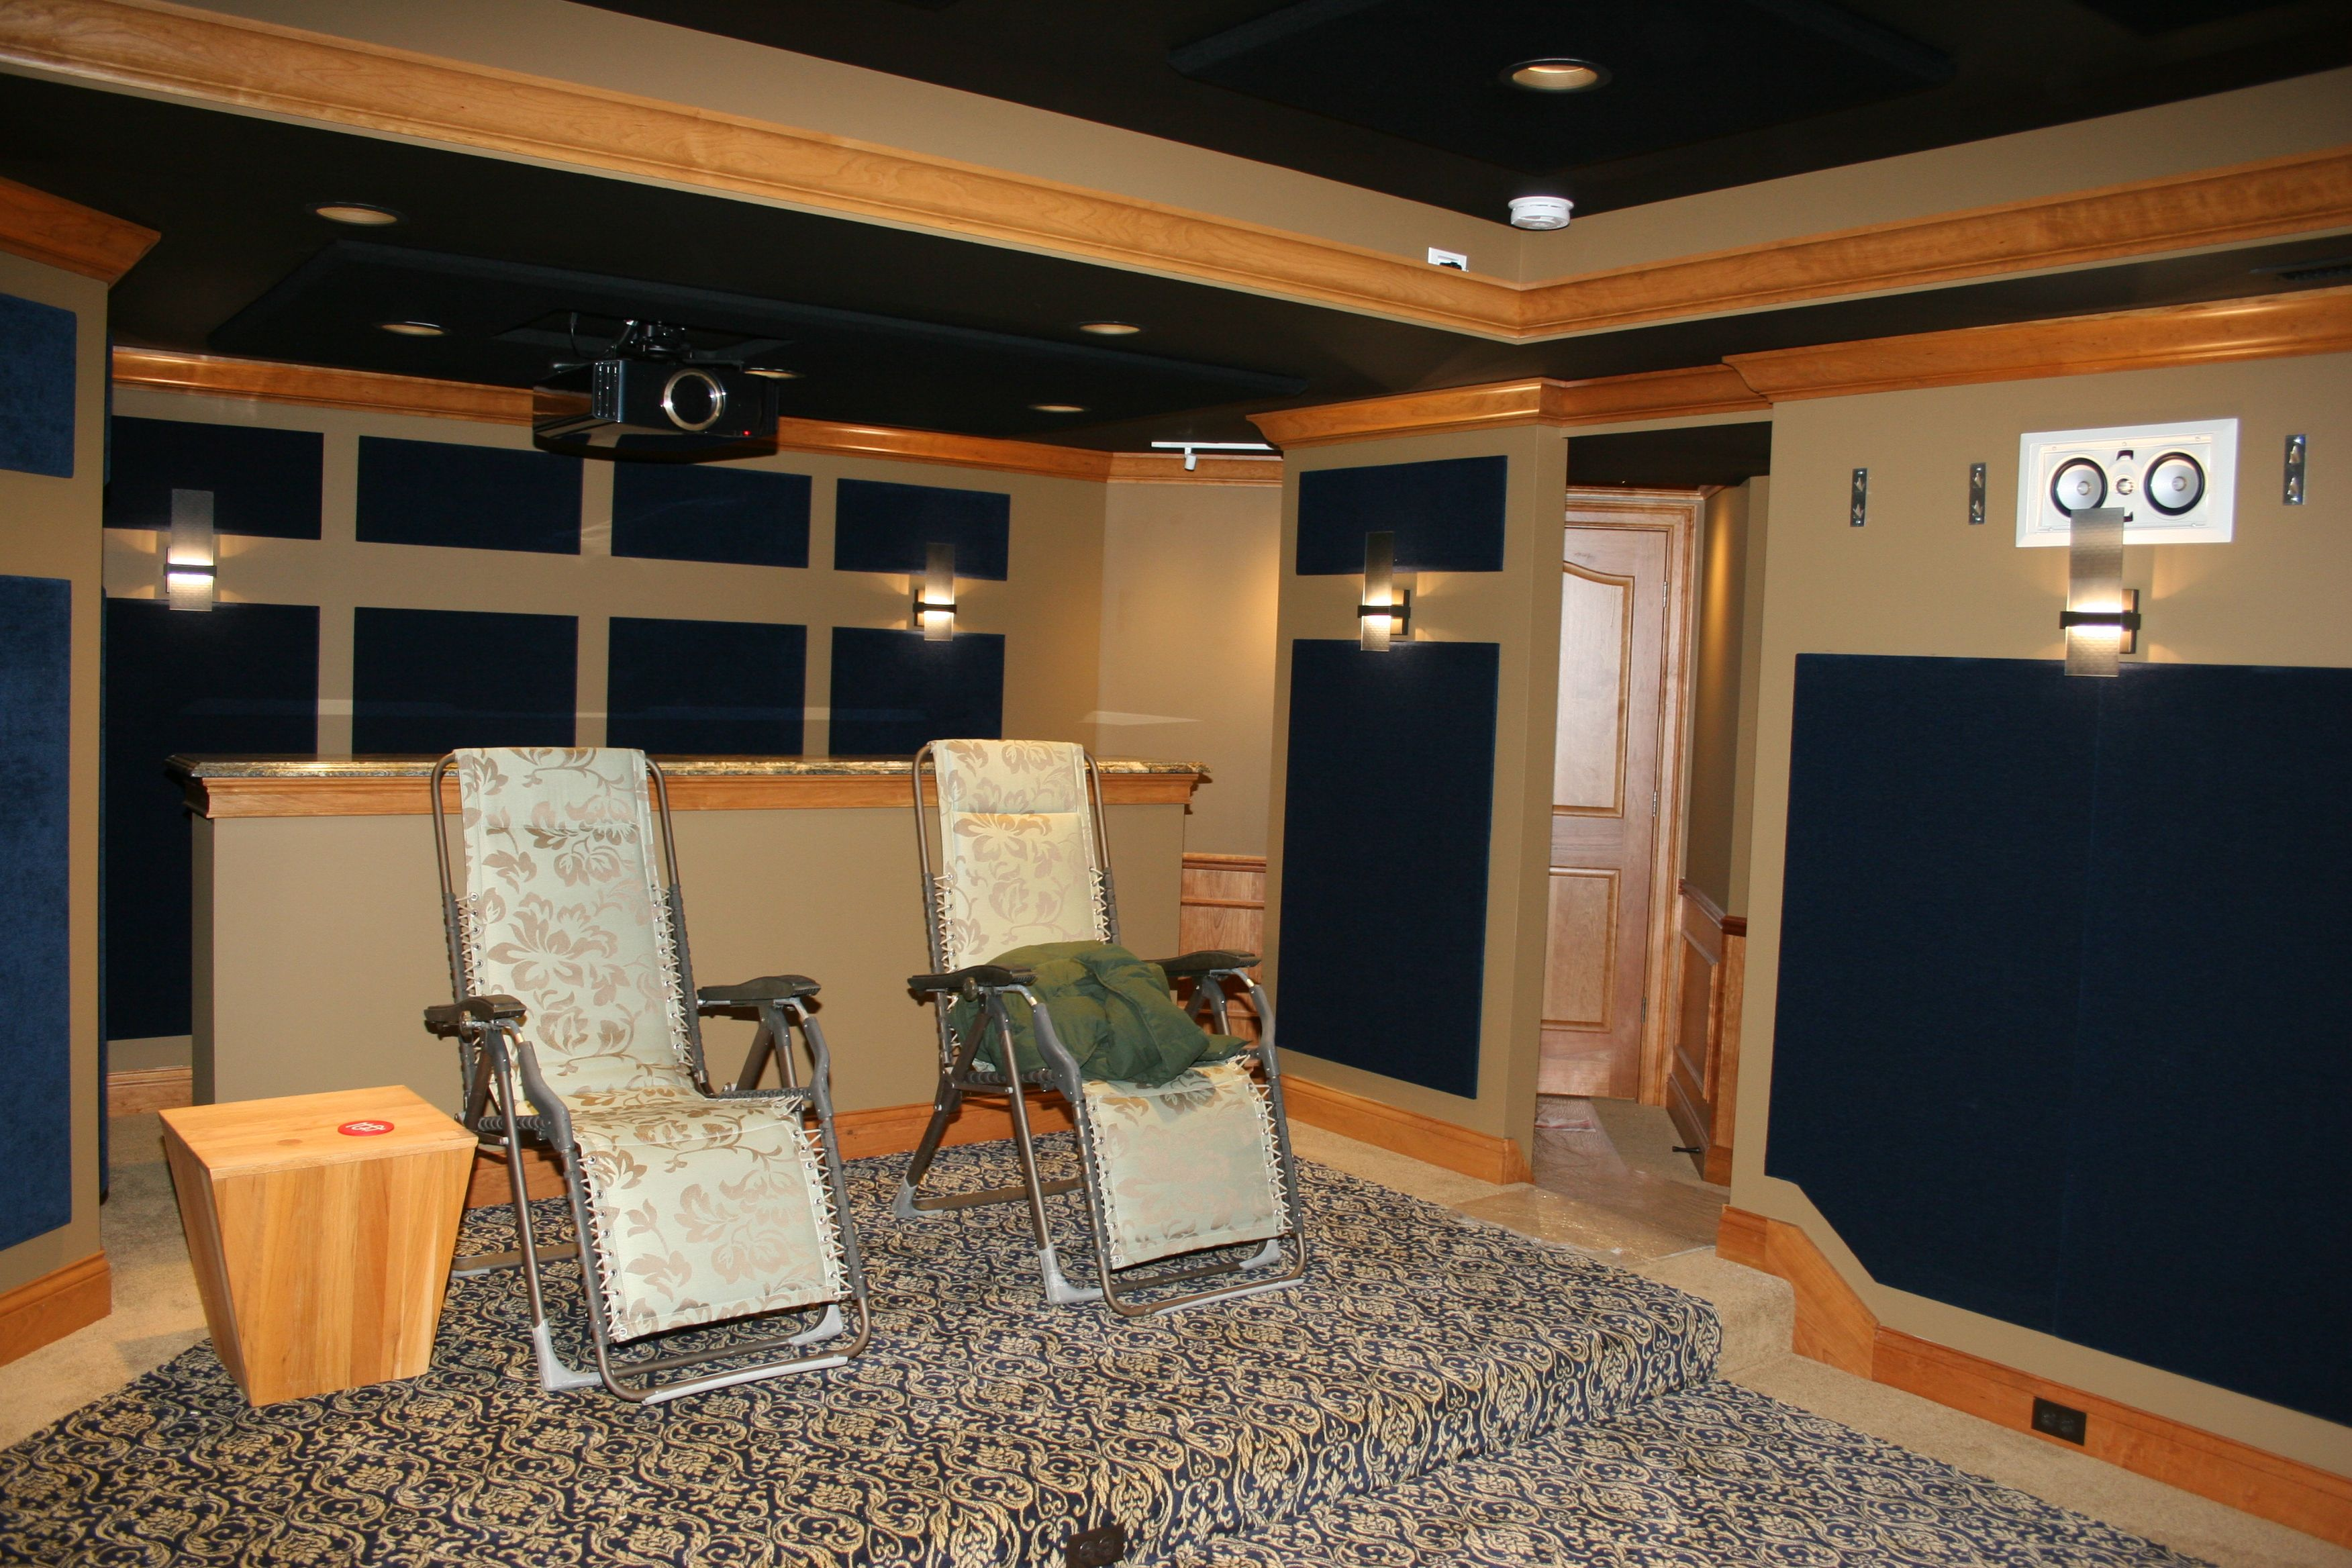 Currently awaiting furniture! DH Custom Home, custom home theater in Chesterfield, MO